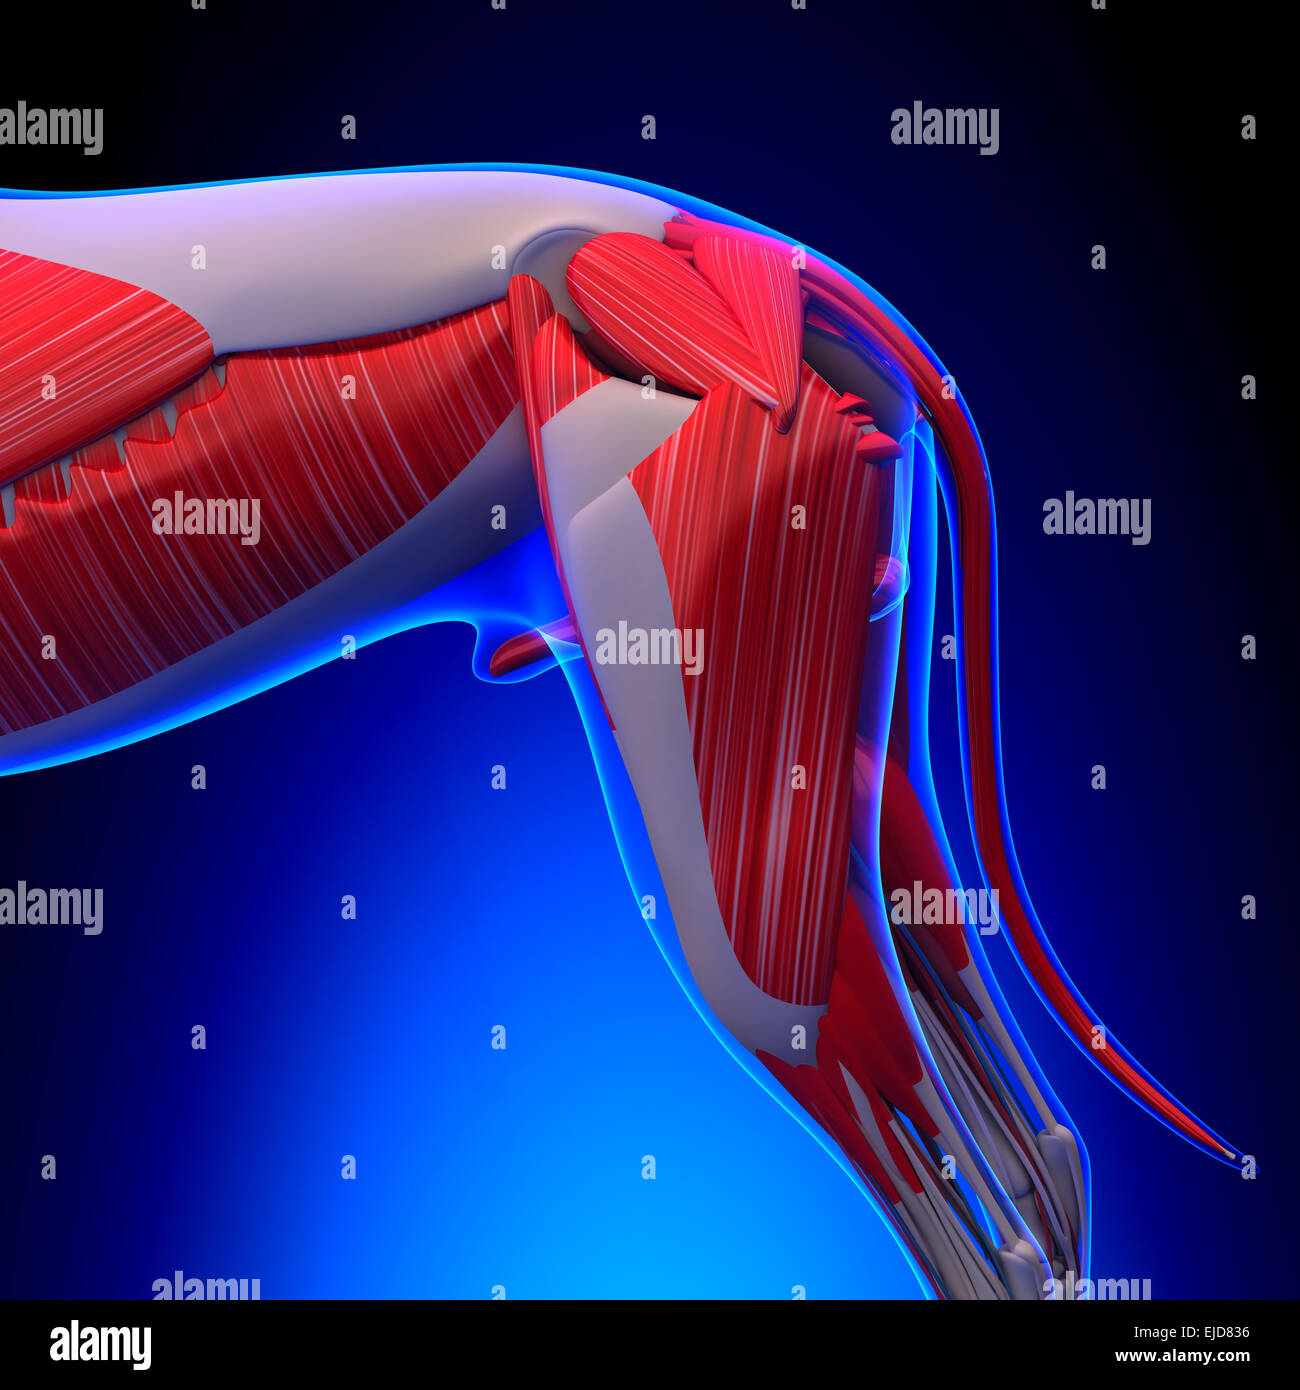 Dog Muscles Anatomy Anatomy Of A Male Dog Muscles Stock Photo